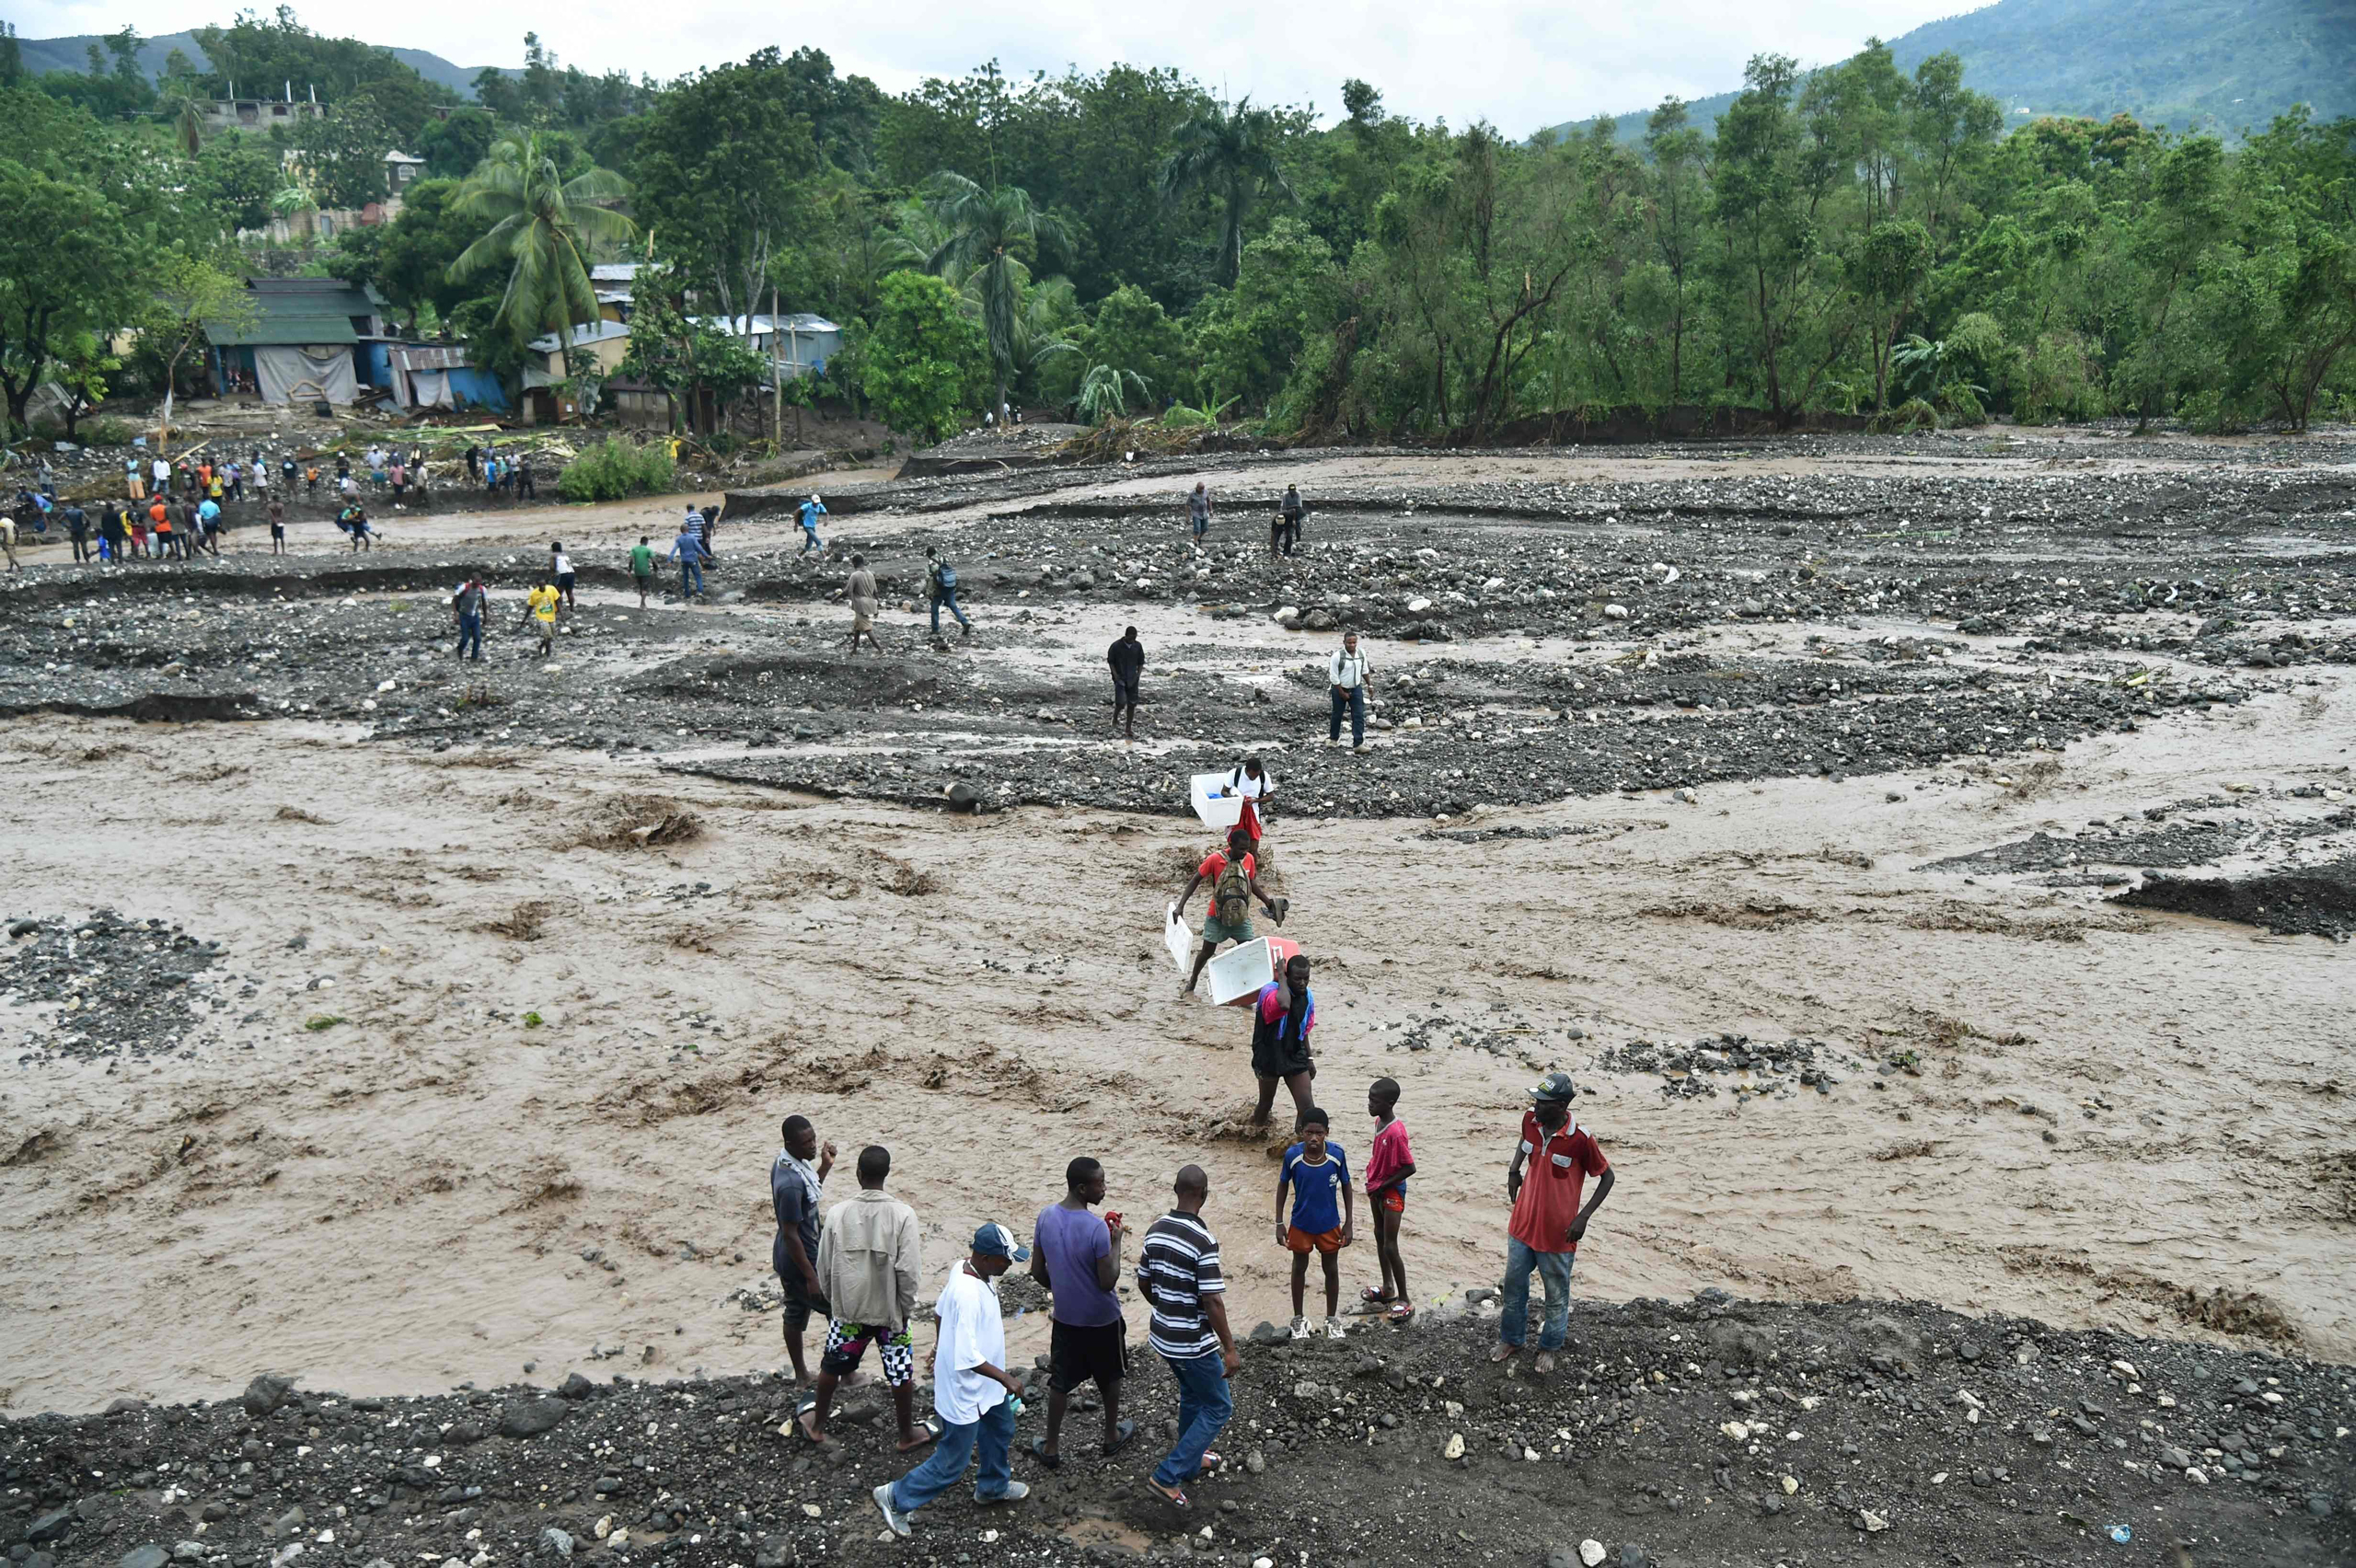 Haitians cross the river La Digue in Petit Goave, where a bridge collapsed during the rains of the Hurricane Matthew, southwest of Port-au-Prince, on Oct. 5, 2016.